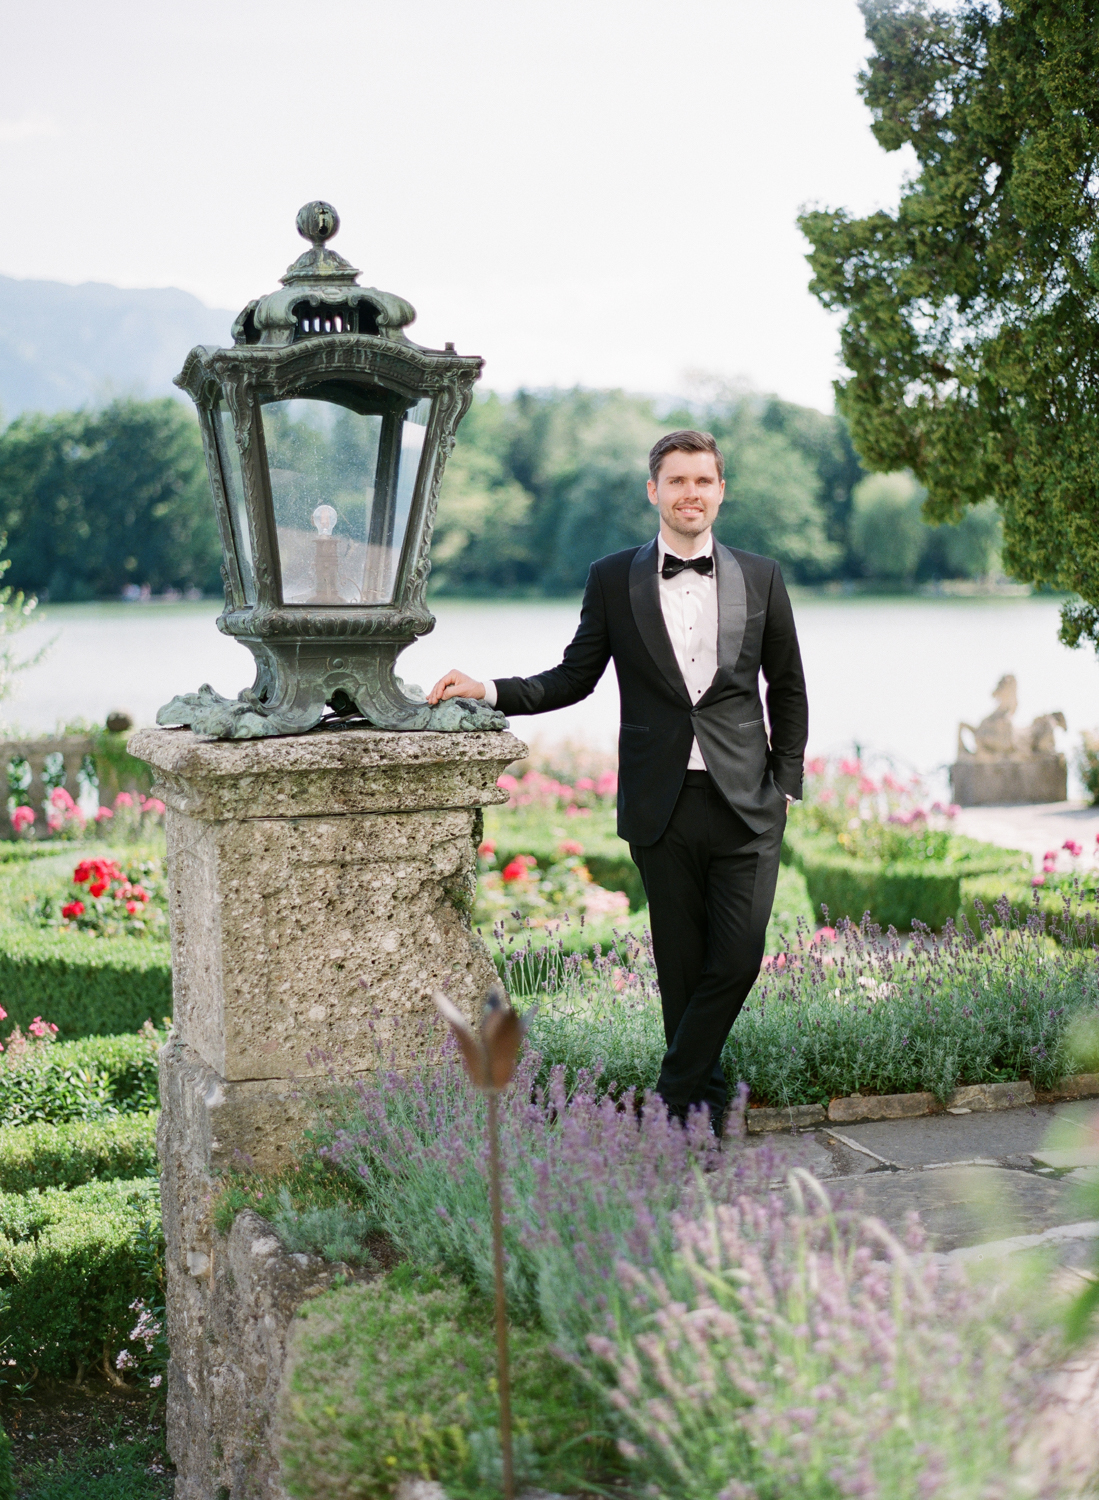 lake_como_wedding_photographer_nikol_bodnarova_173.JPG